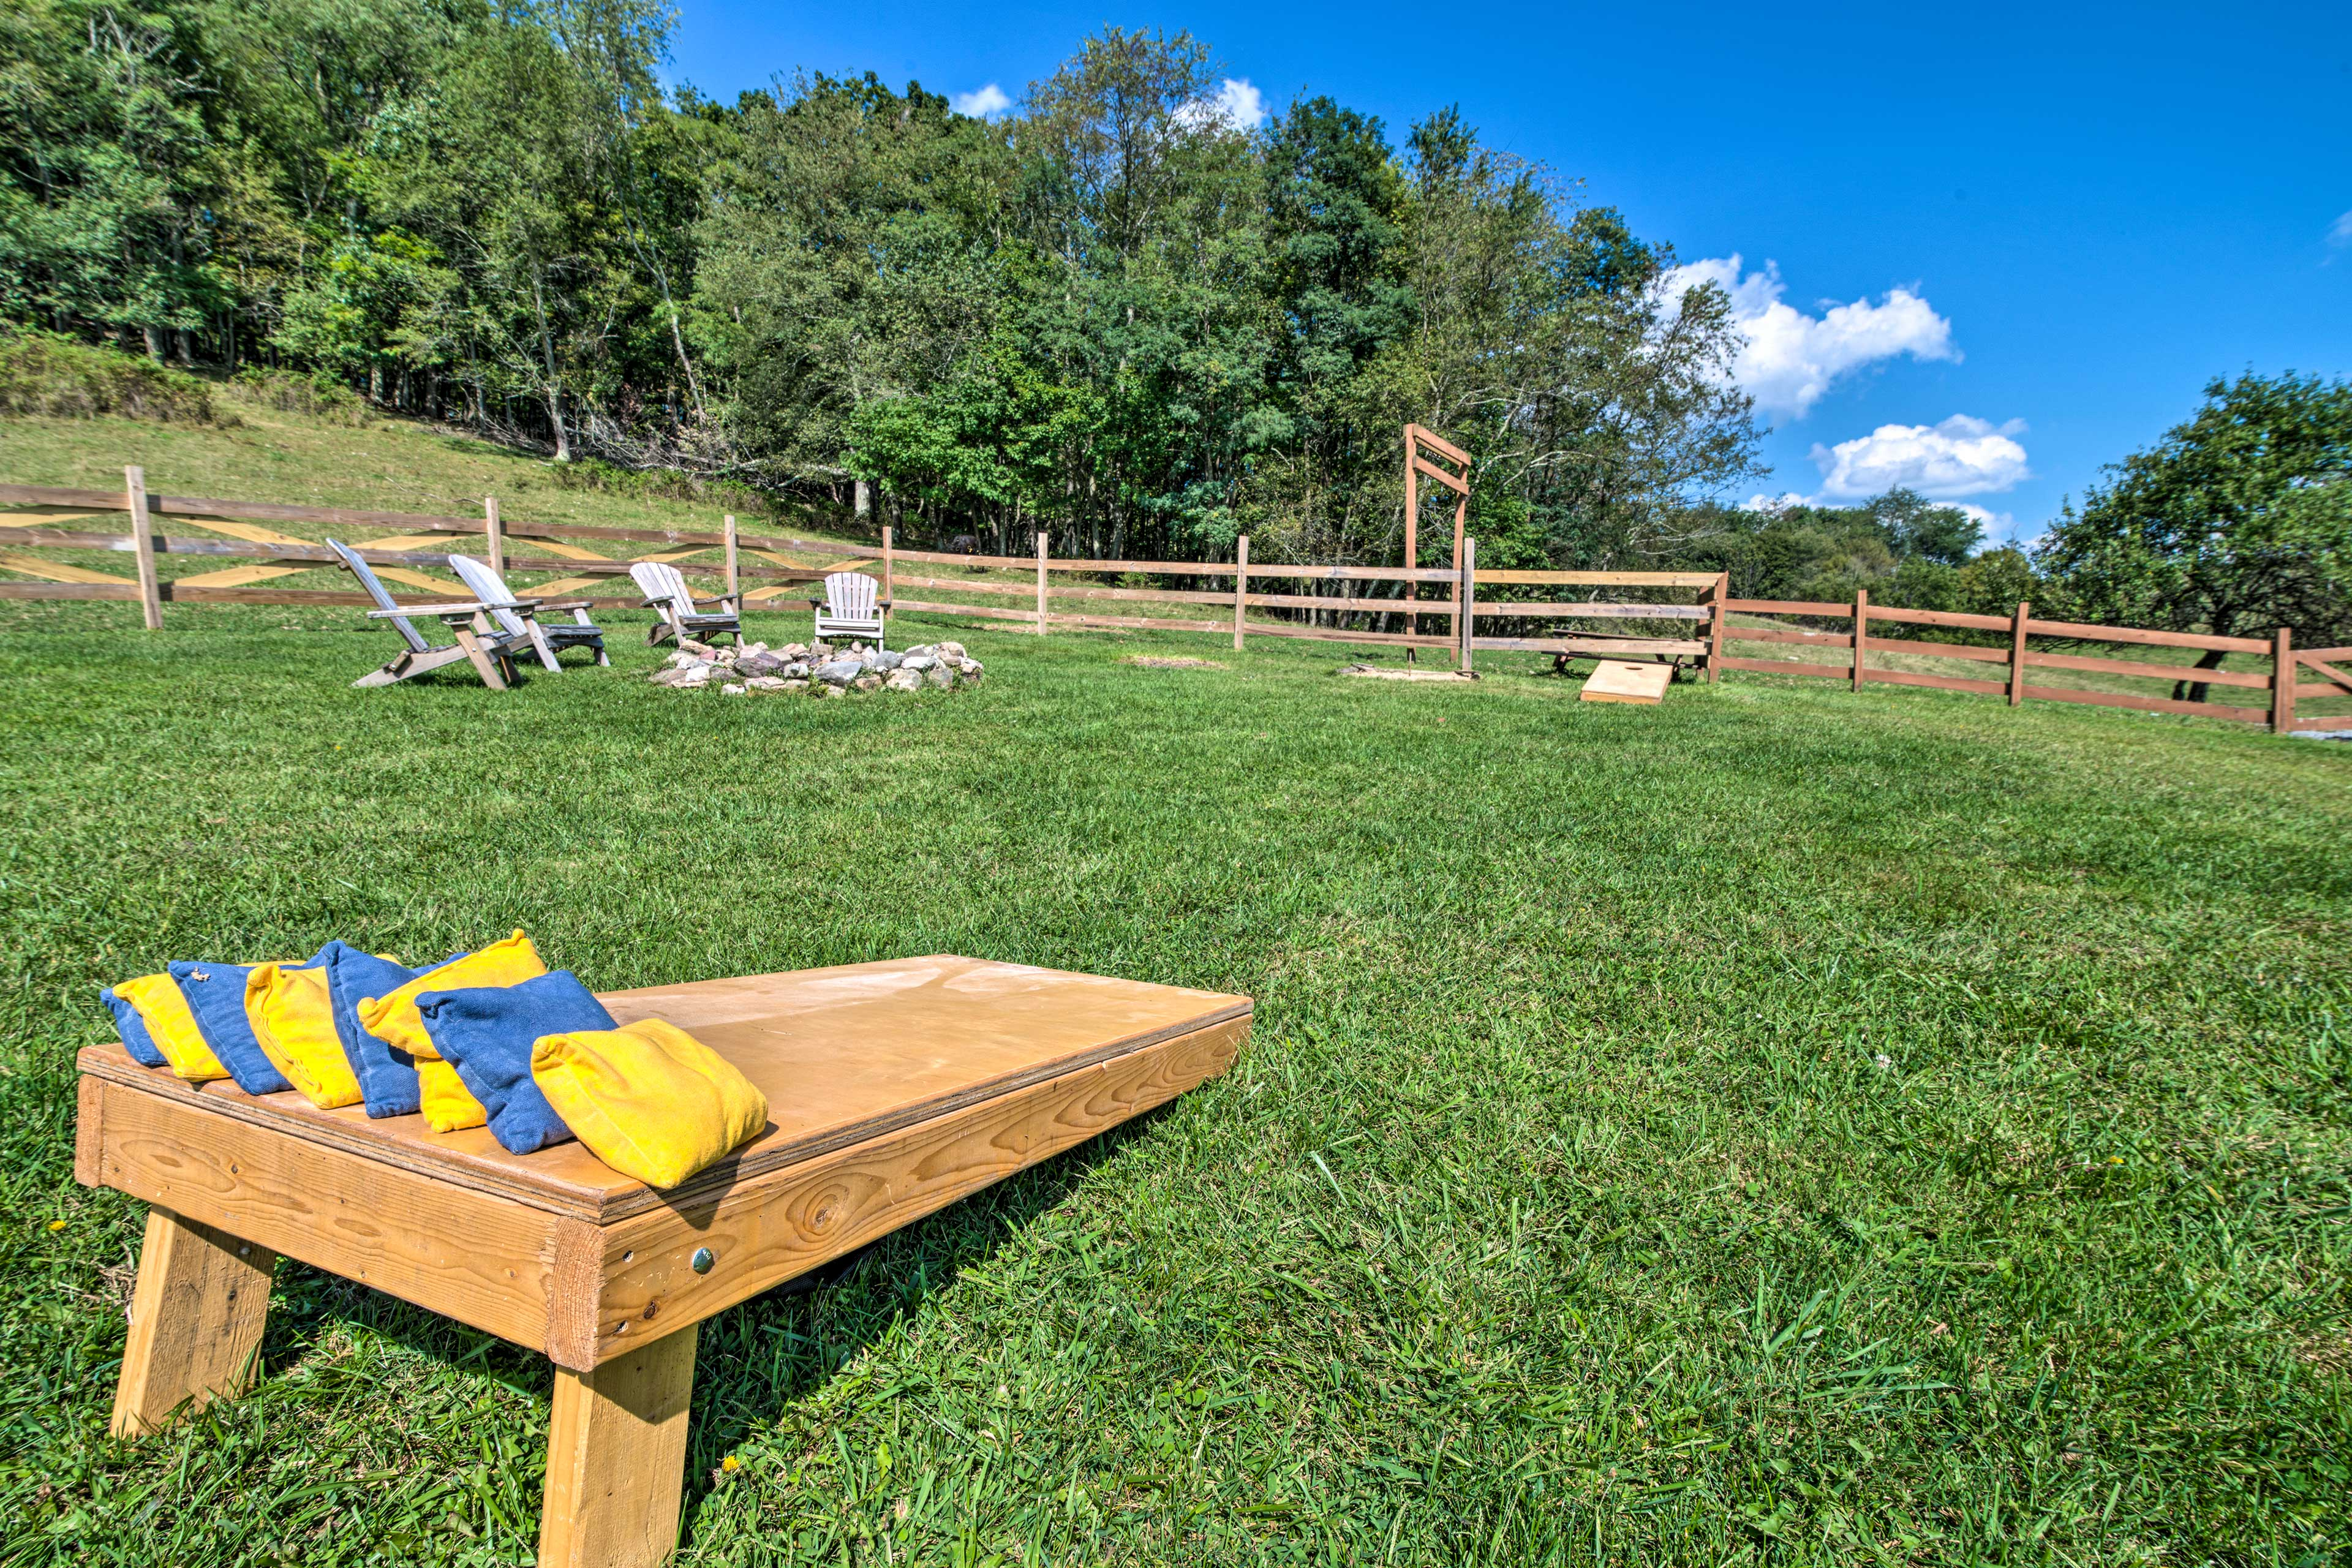 Play cornhole or horseshoes with the kids.